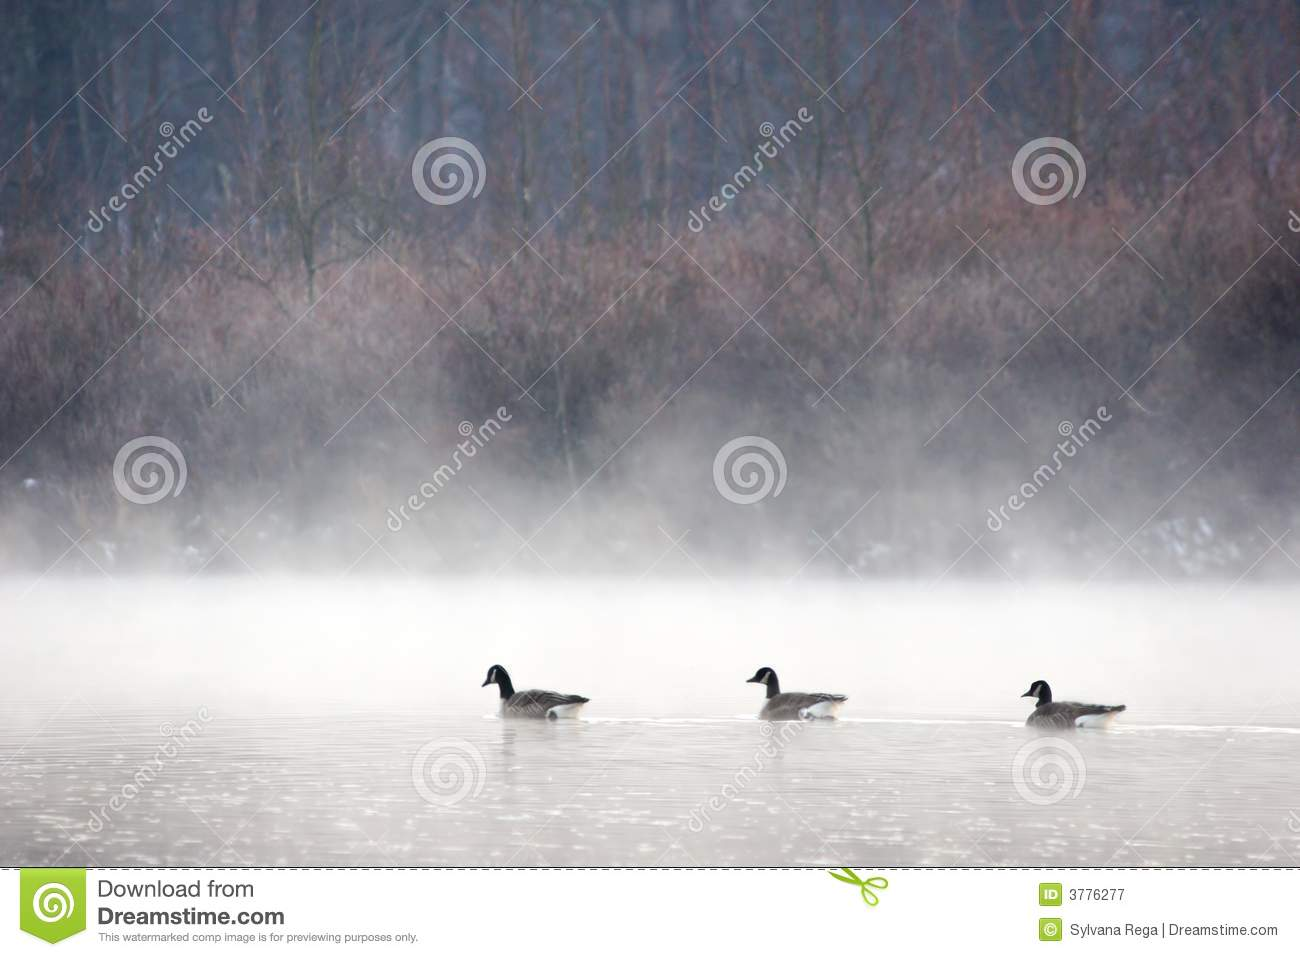 Three Geese in the mist